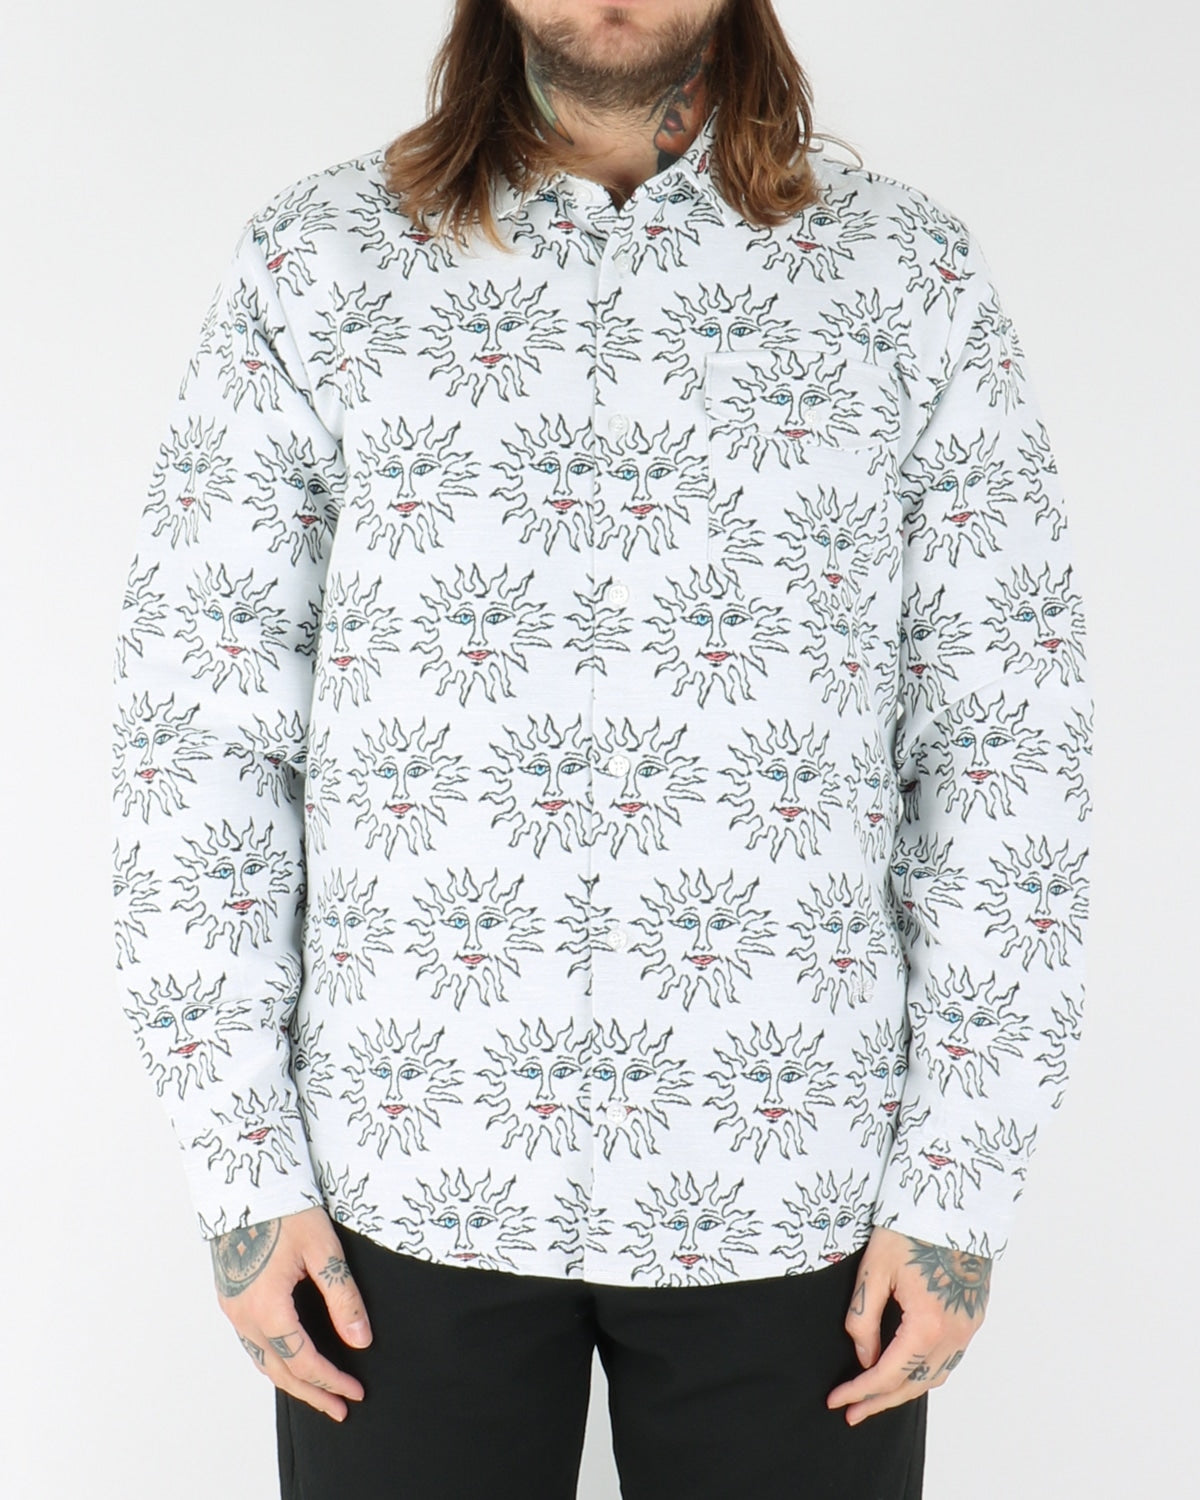 soulland_burke western shirt_white/black_view_1_3